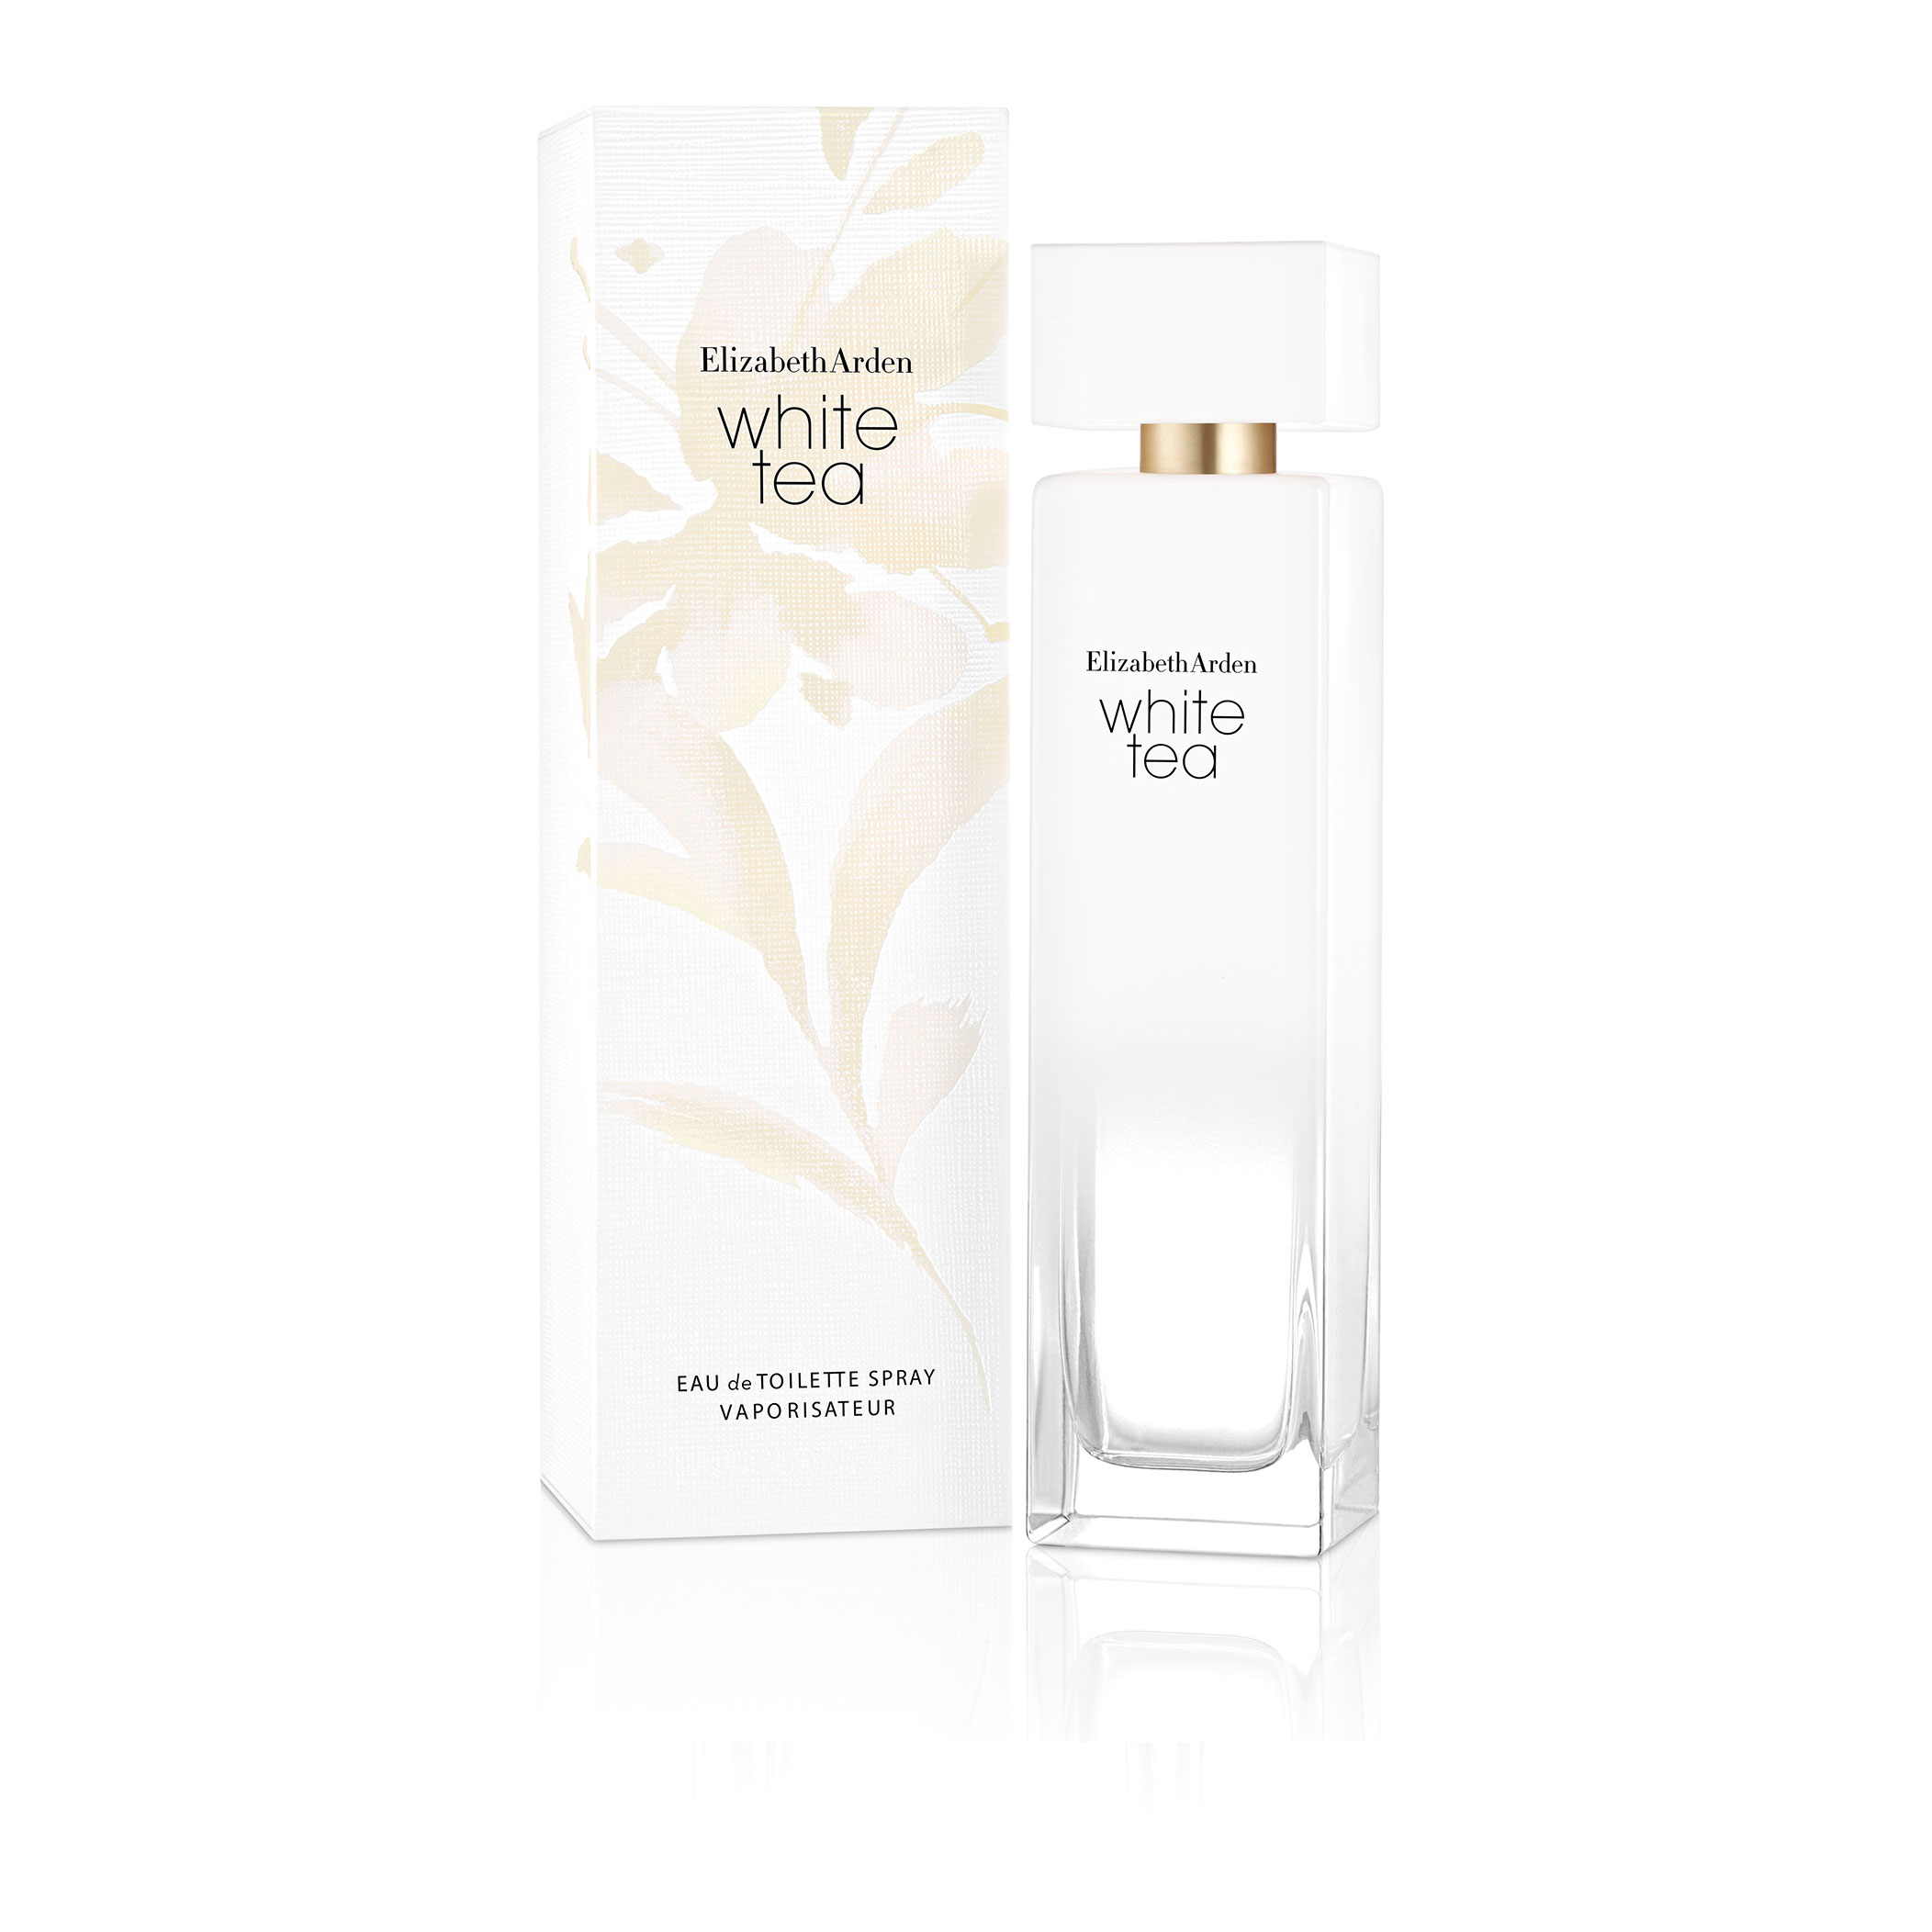 Туалетная вода Elizabeth Arden White Tea 100ml фото